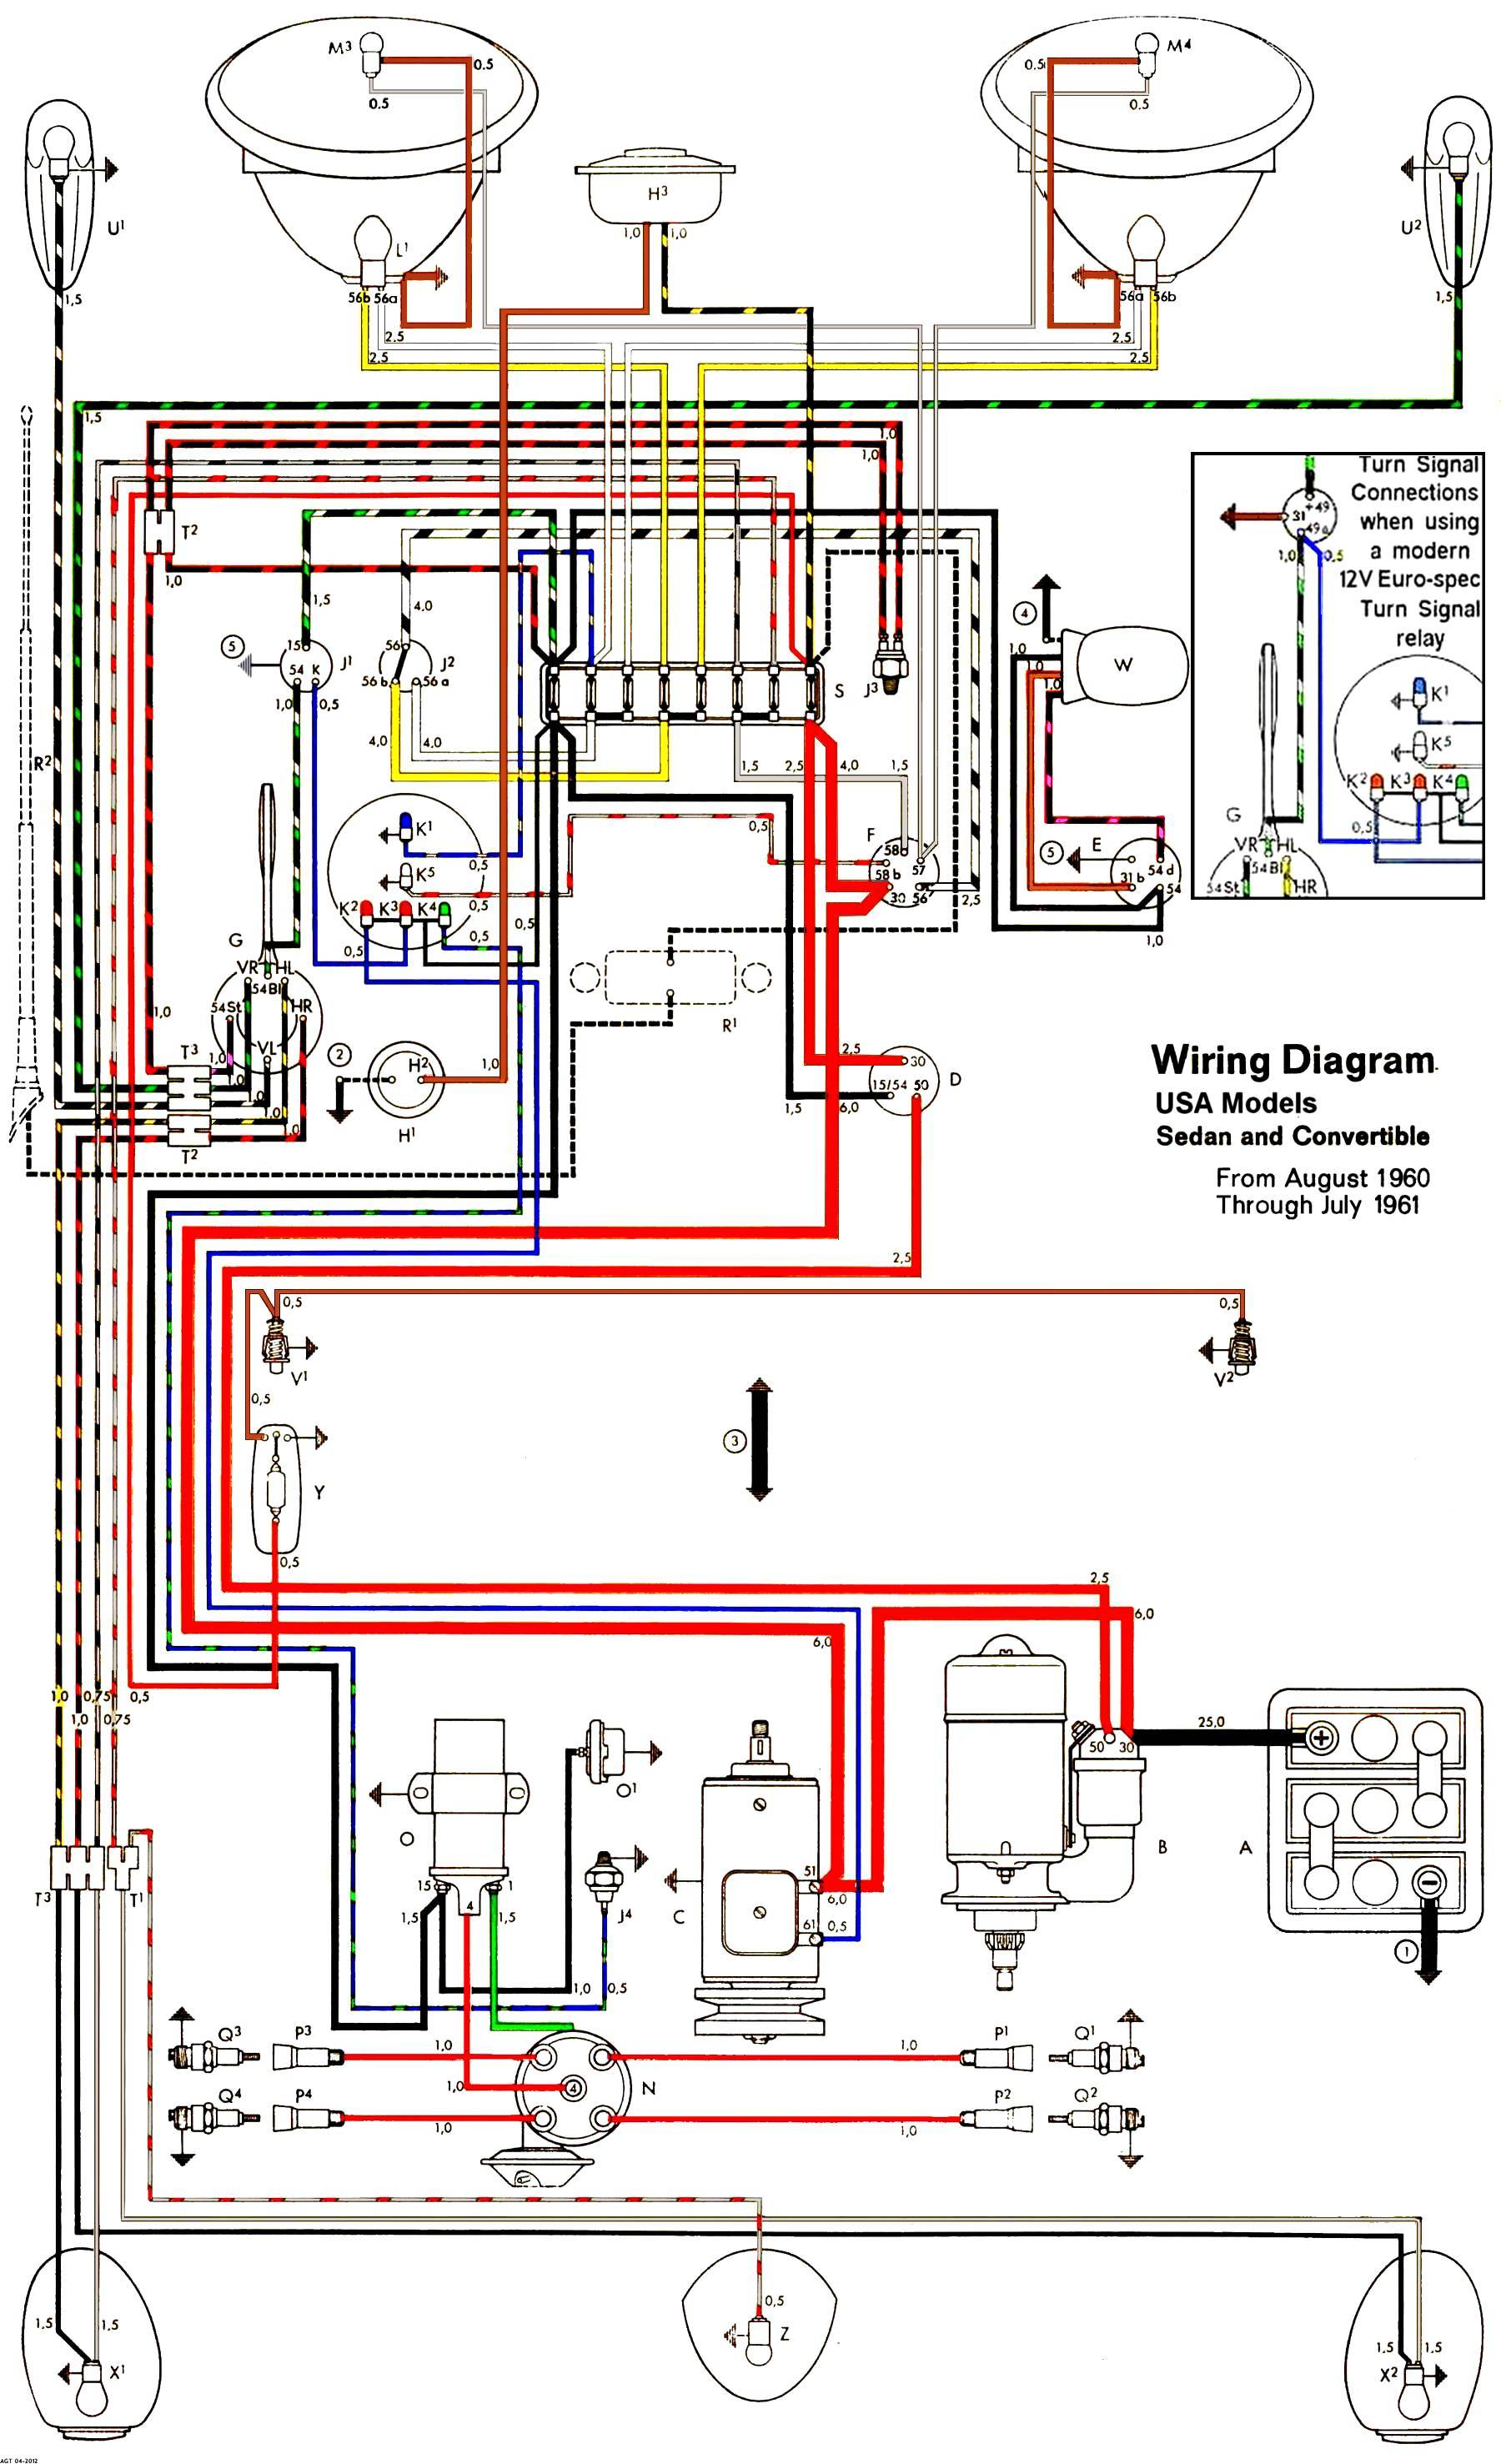 thesamba com type 1 wiring diagrams rh thesamba com 1972 VW Wiring Diagram 1963 VW Wiring Diagram